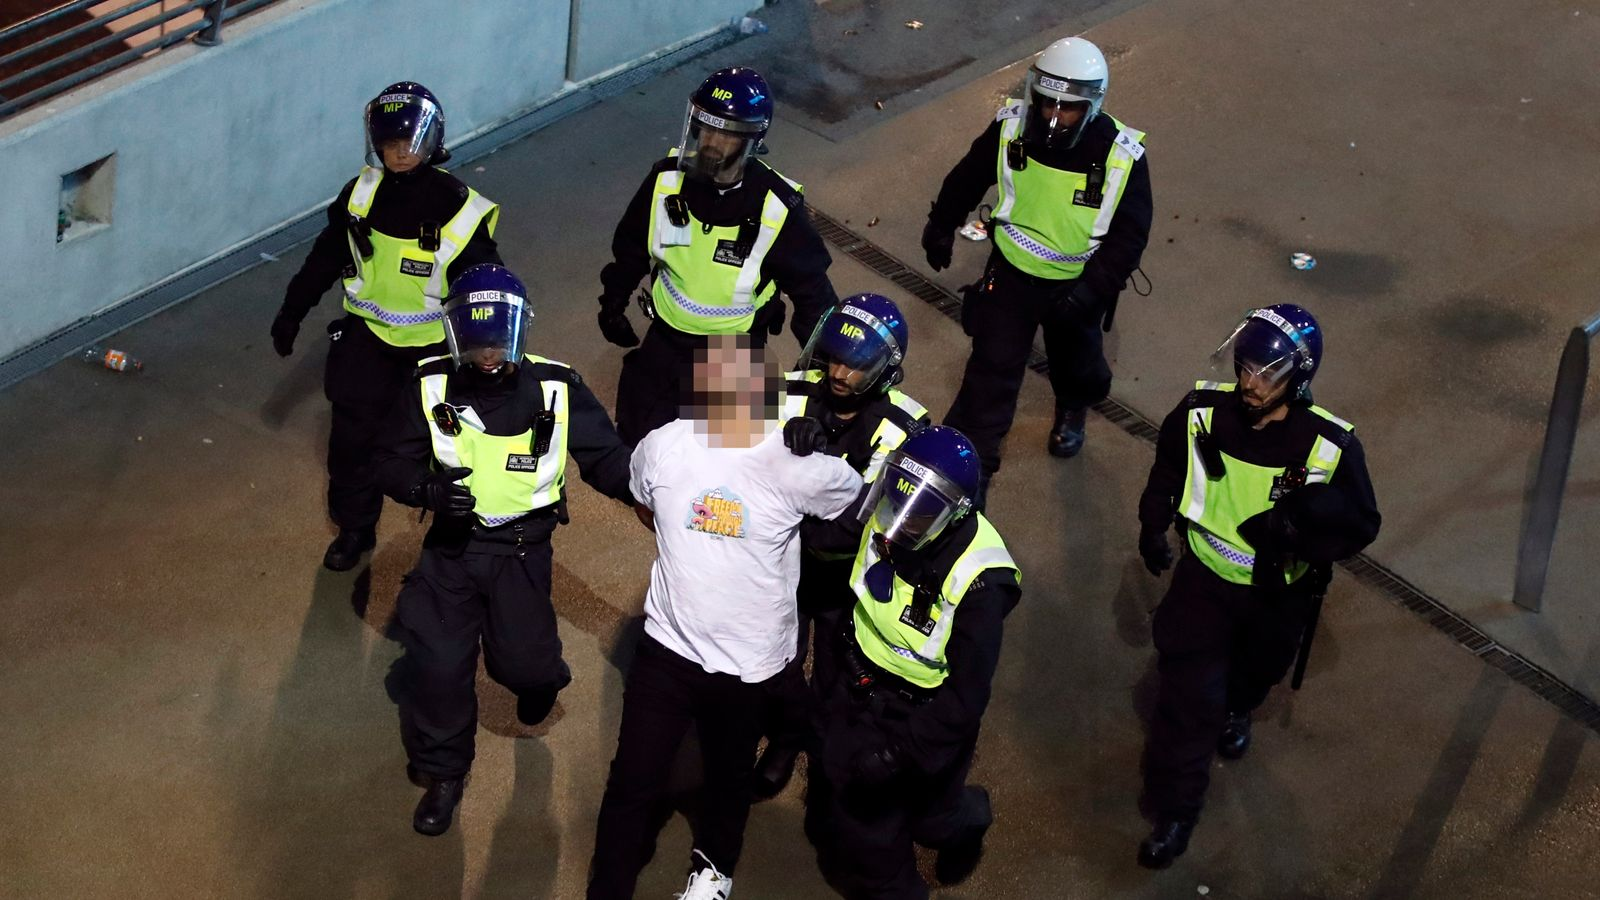 Euro 2020: Police forces deal with record number of football-related incidents after Wembley final